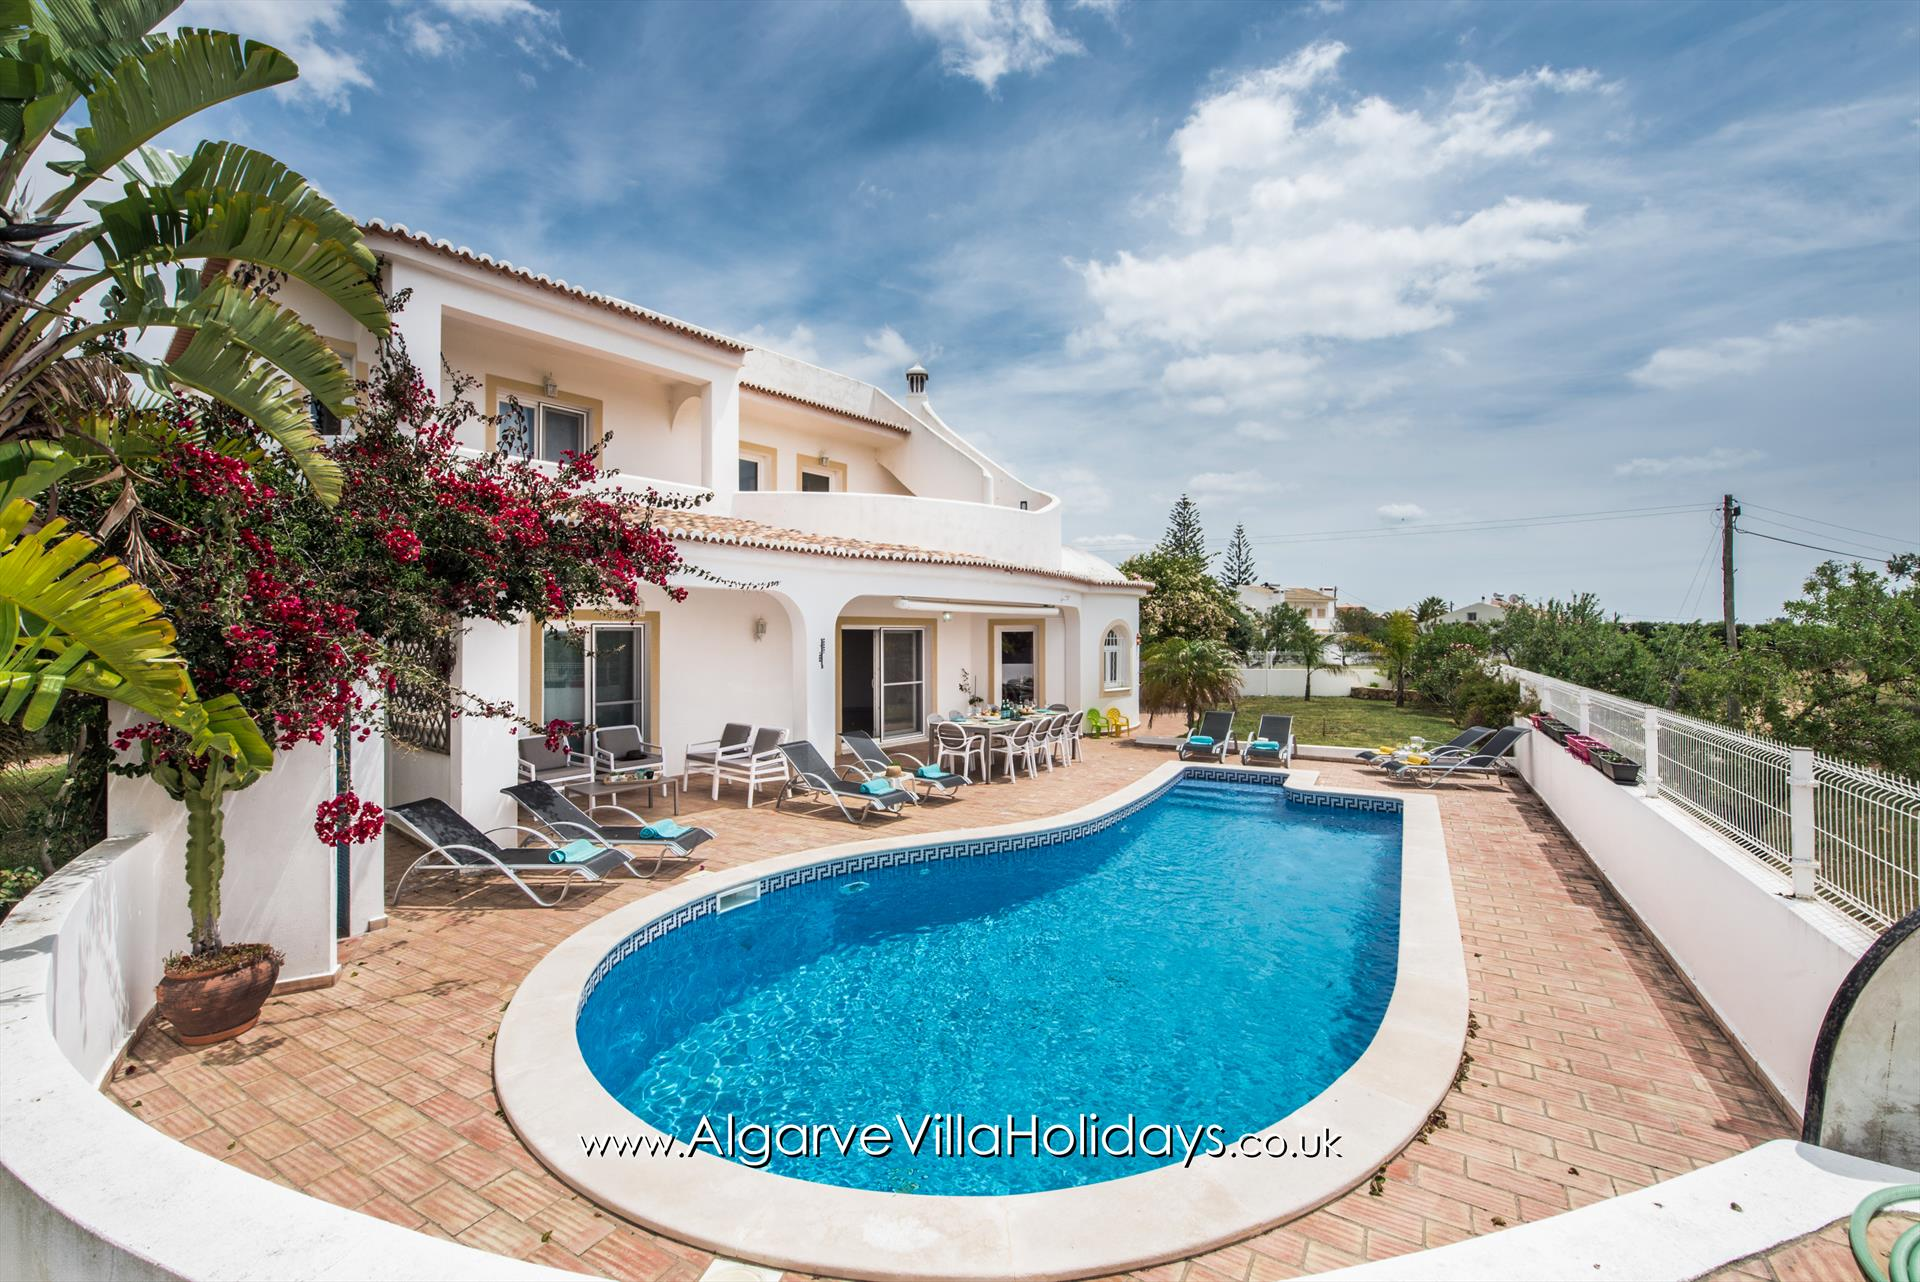 Luz,Lovely and cheerful villa in Guia, on the Algarve, Portugal  with private pool for 8 persons.....